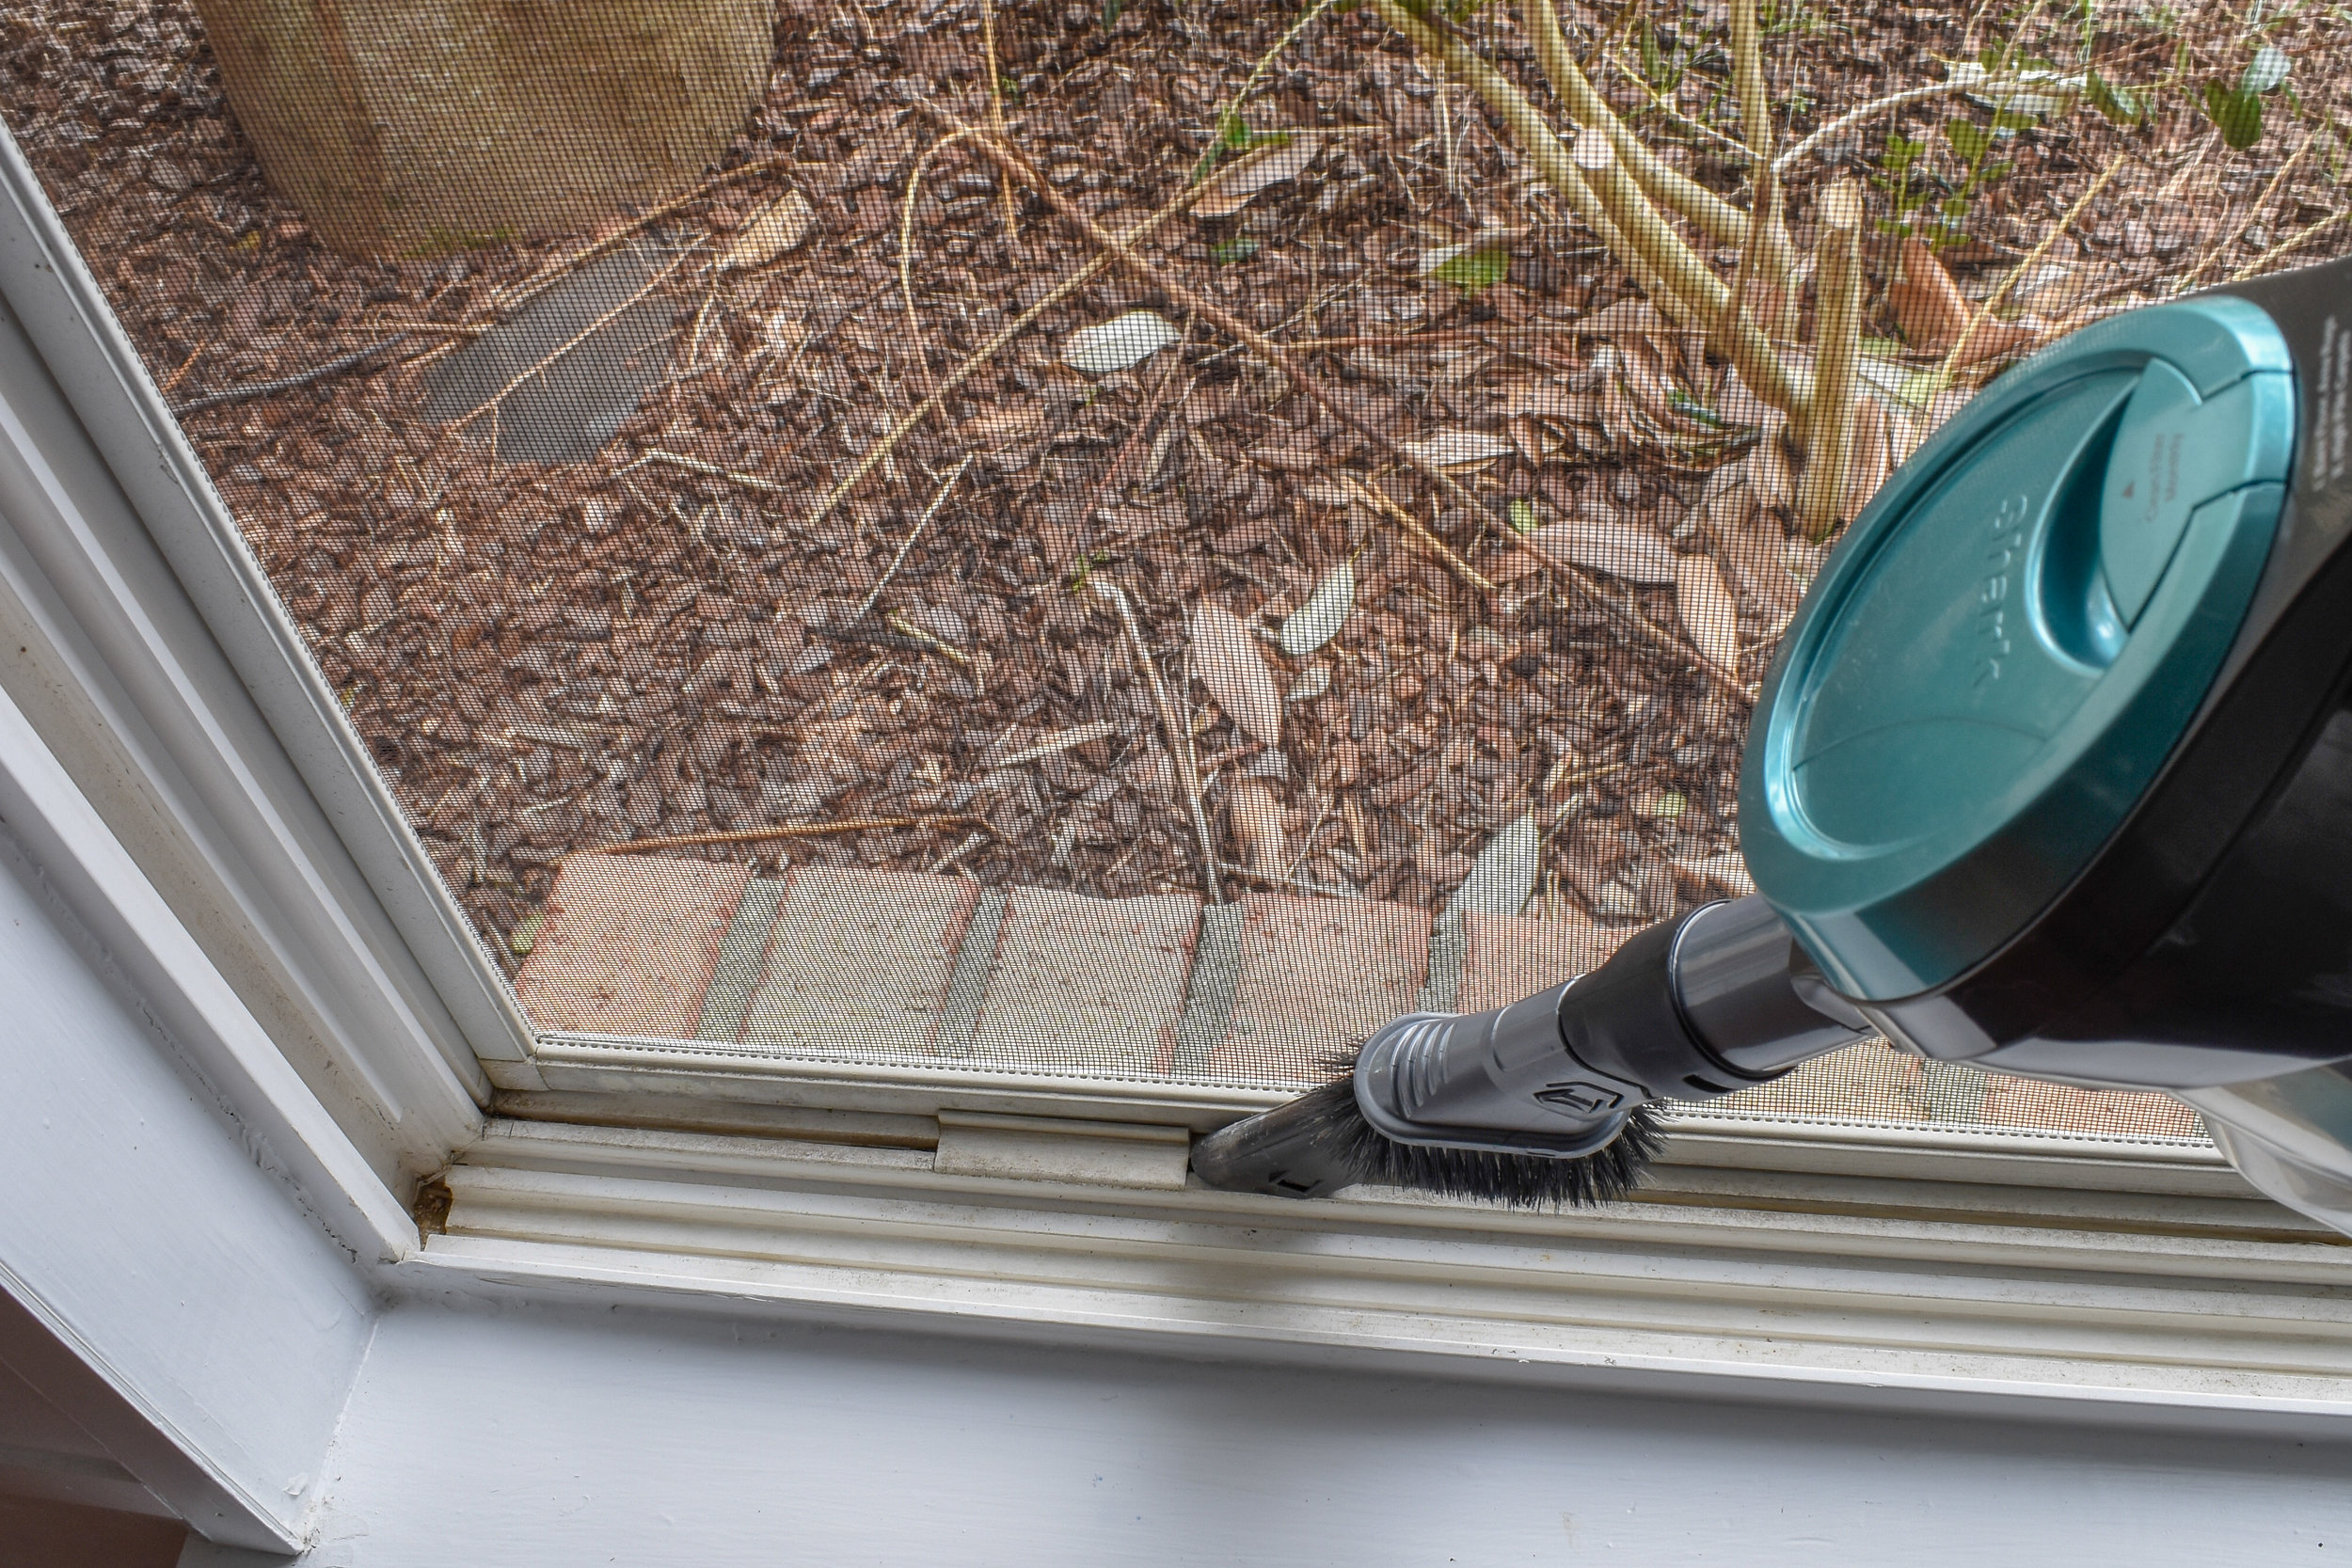 Cleaning Vinyl Windows: This deep cleaning method is fast and super effective! Your windows will look nearly new in under 10 minutes. Plus, I'm showing you how to make a chemical-free cleaner that repels bugs and makes your glass shine! #springcleaning #essentialoilrecipes #windowcleaning